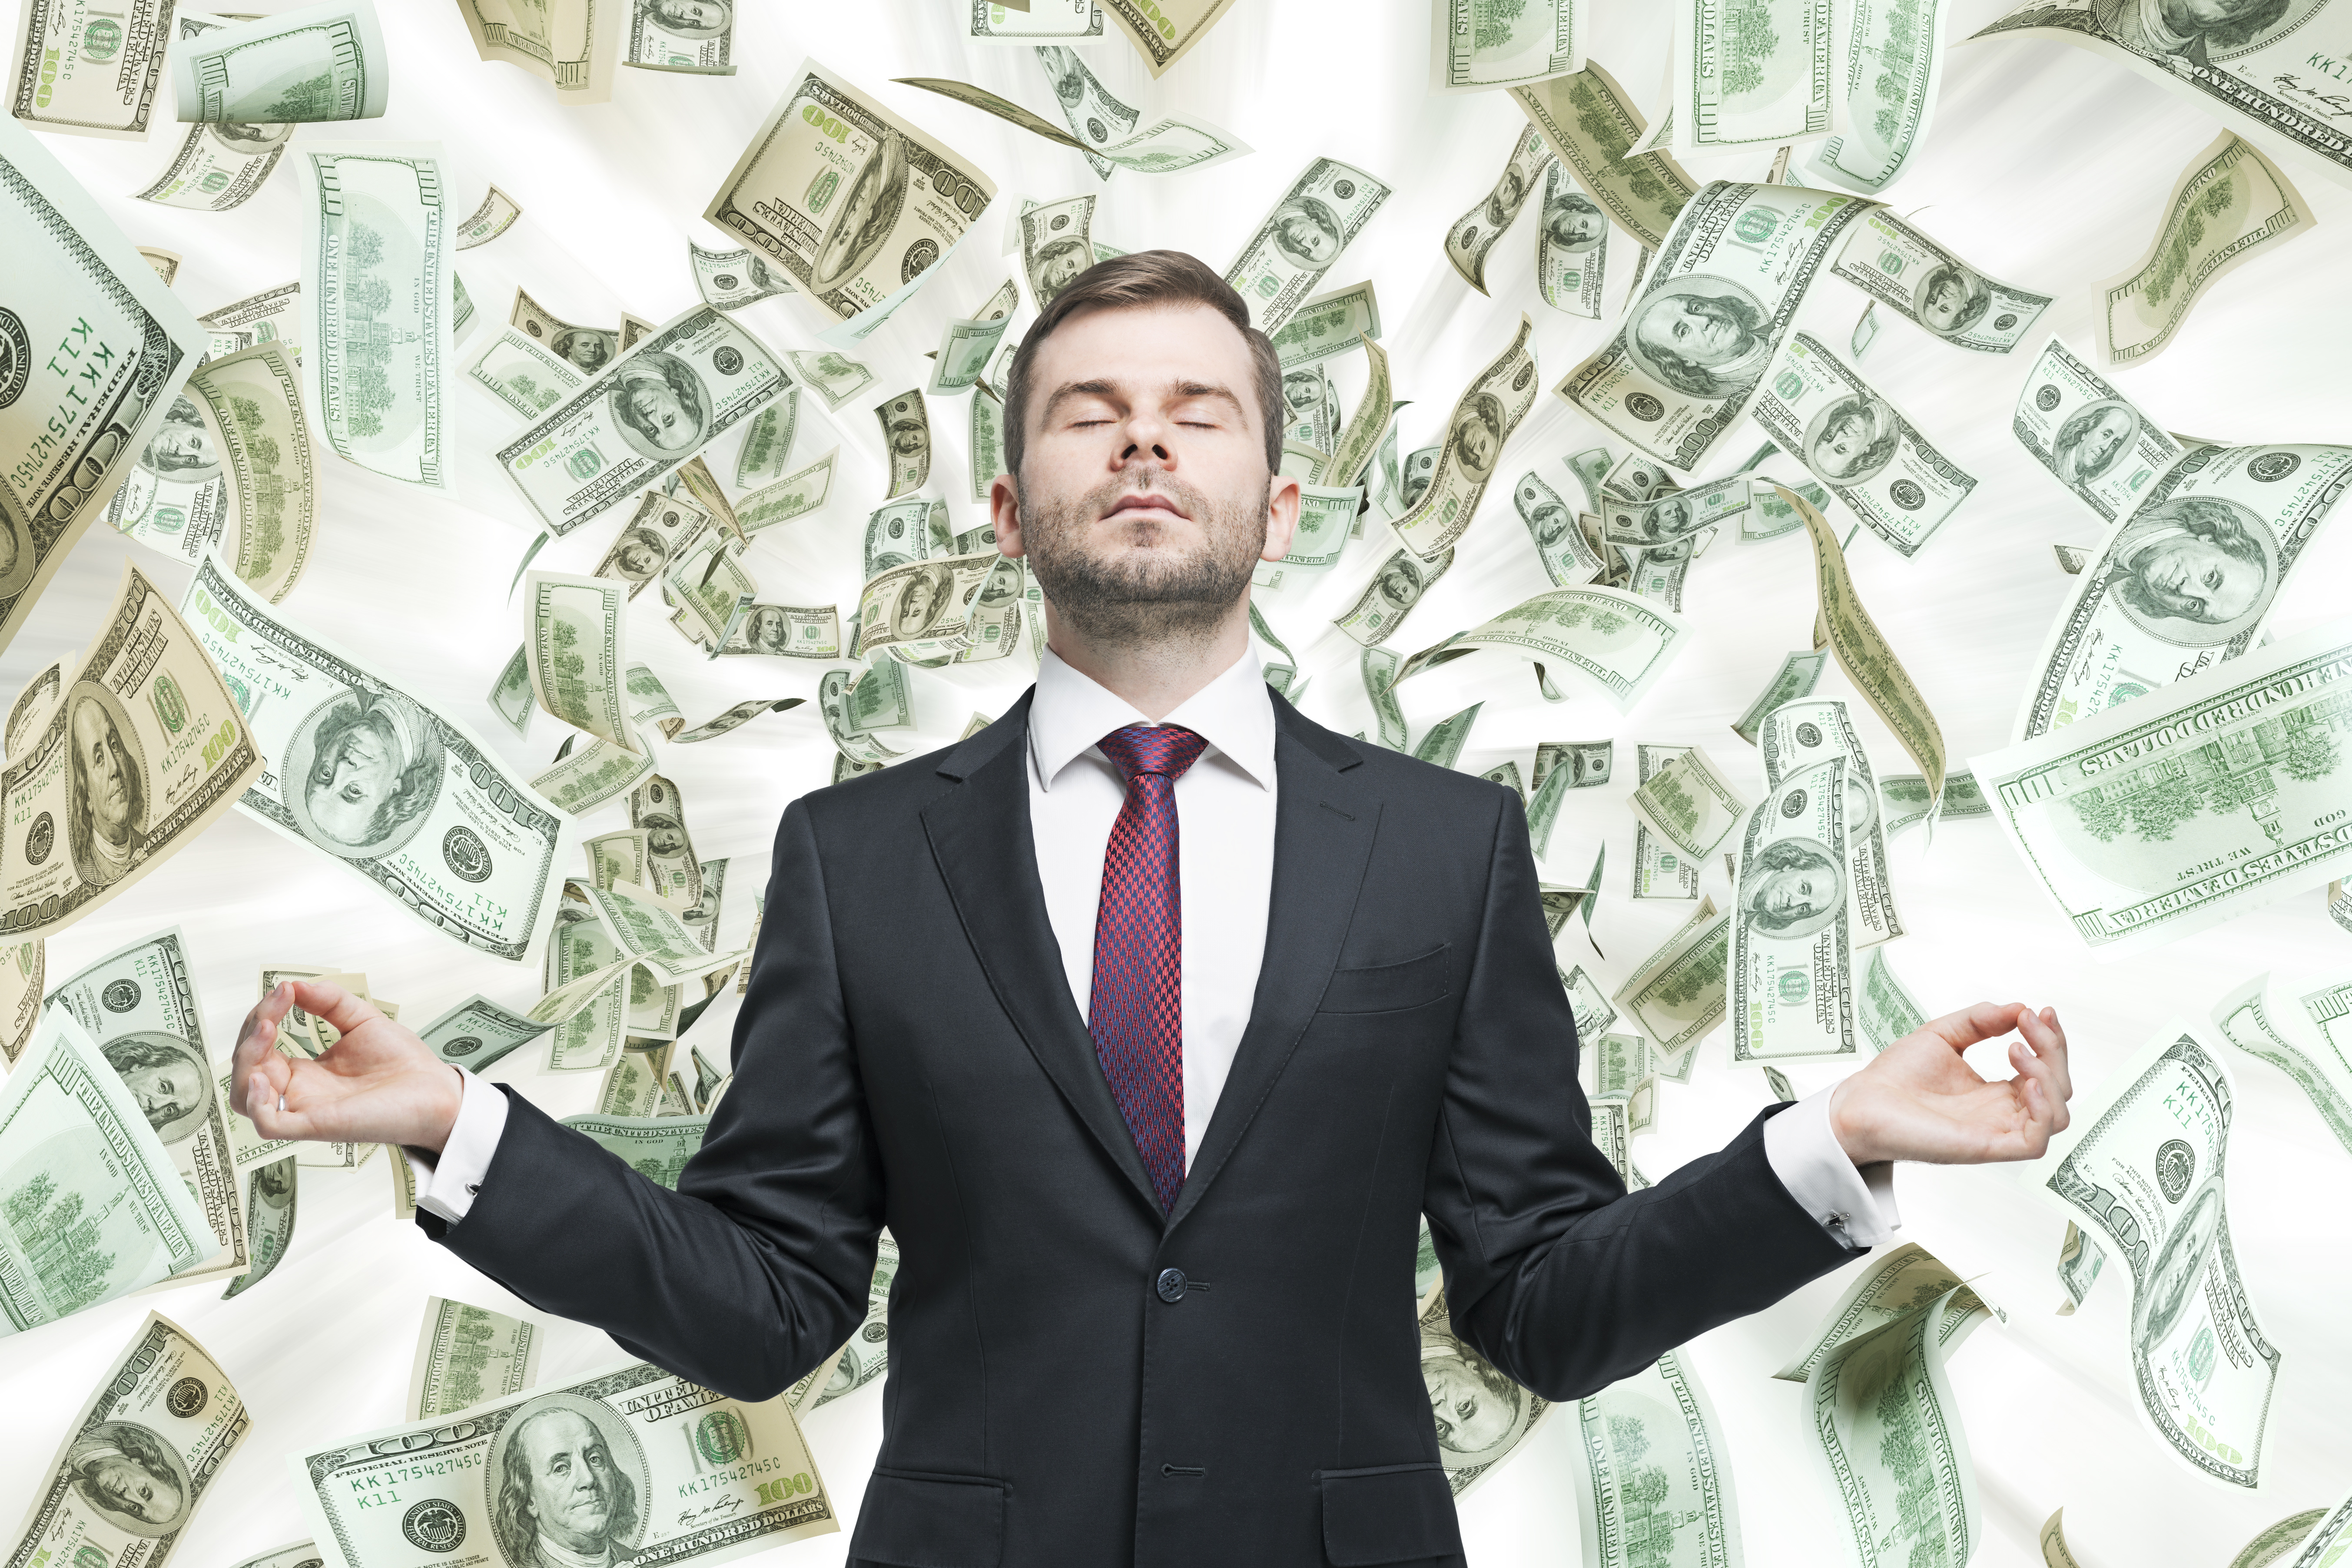 hypnotic prosperity meditation for making lots of money graham hypnotic prosperity meditation for making lots of money graham stoney